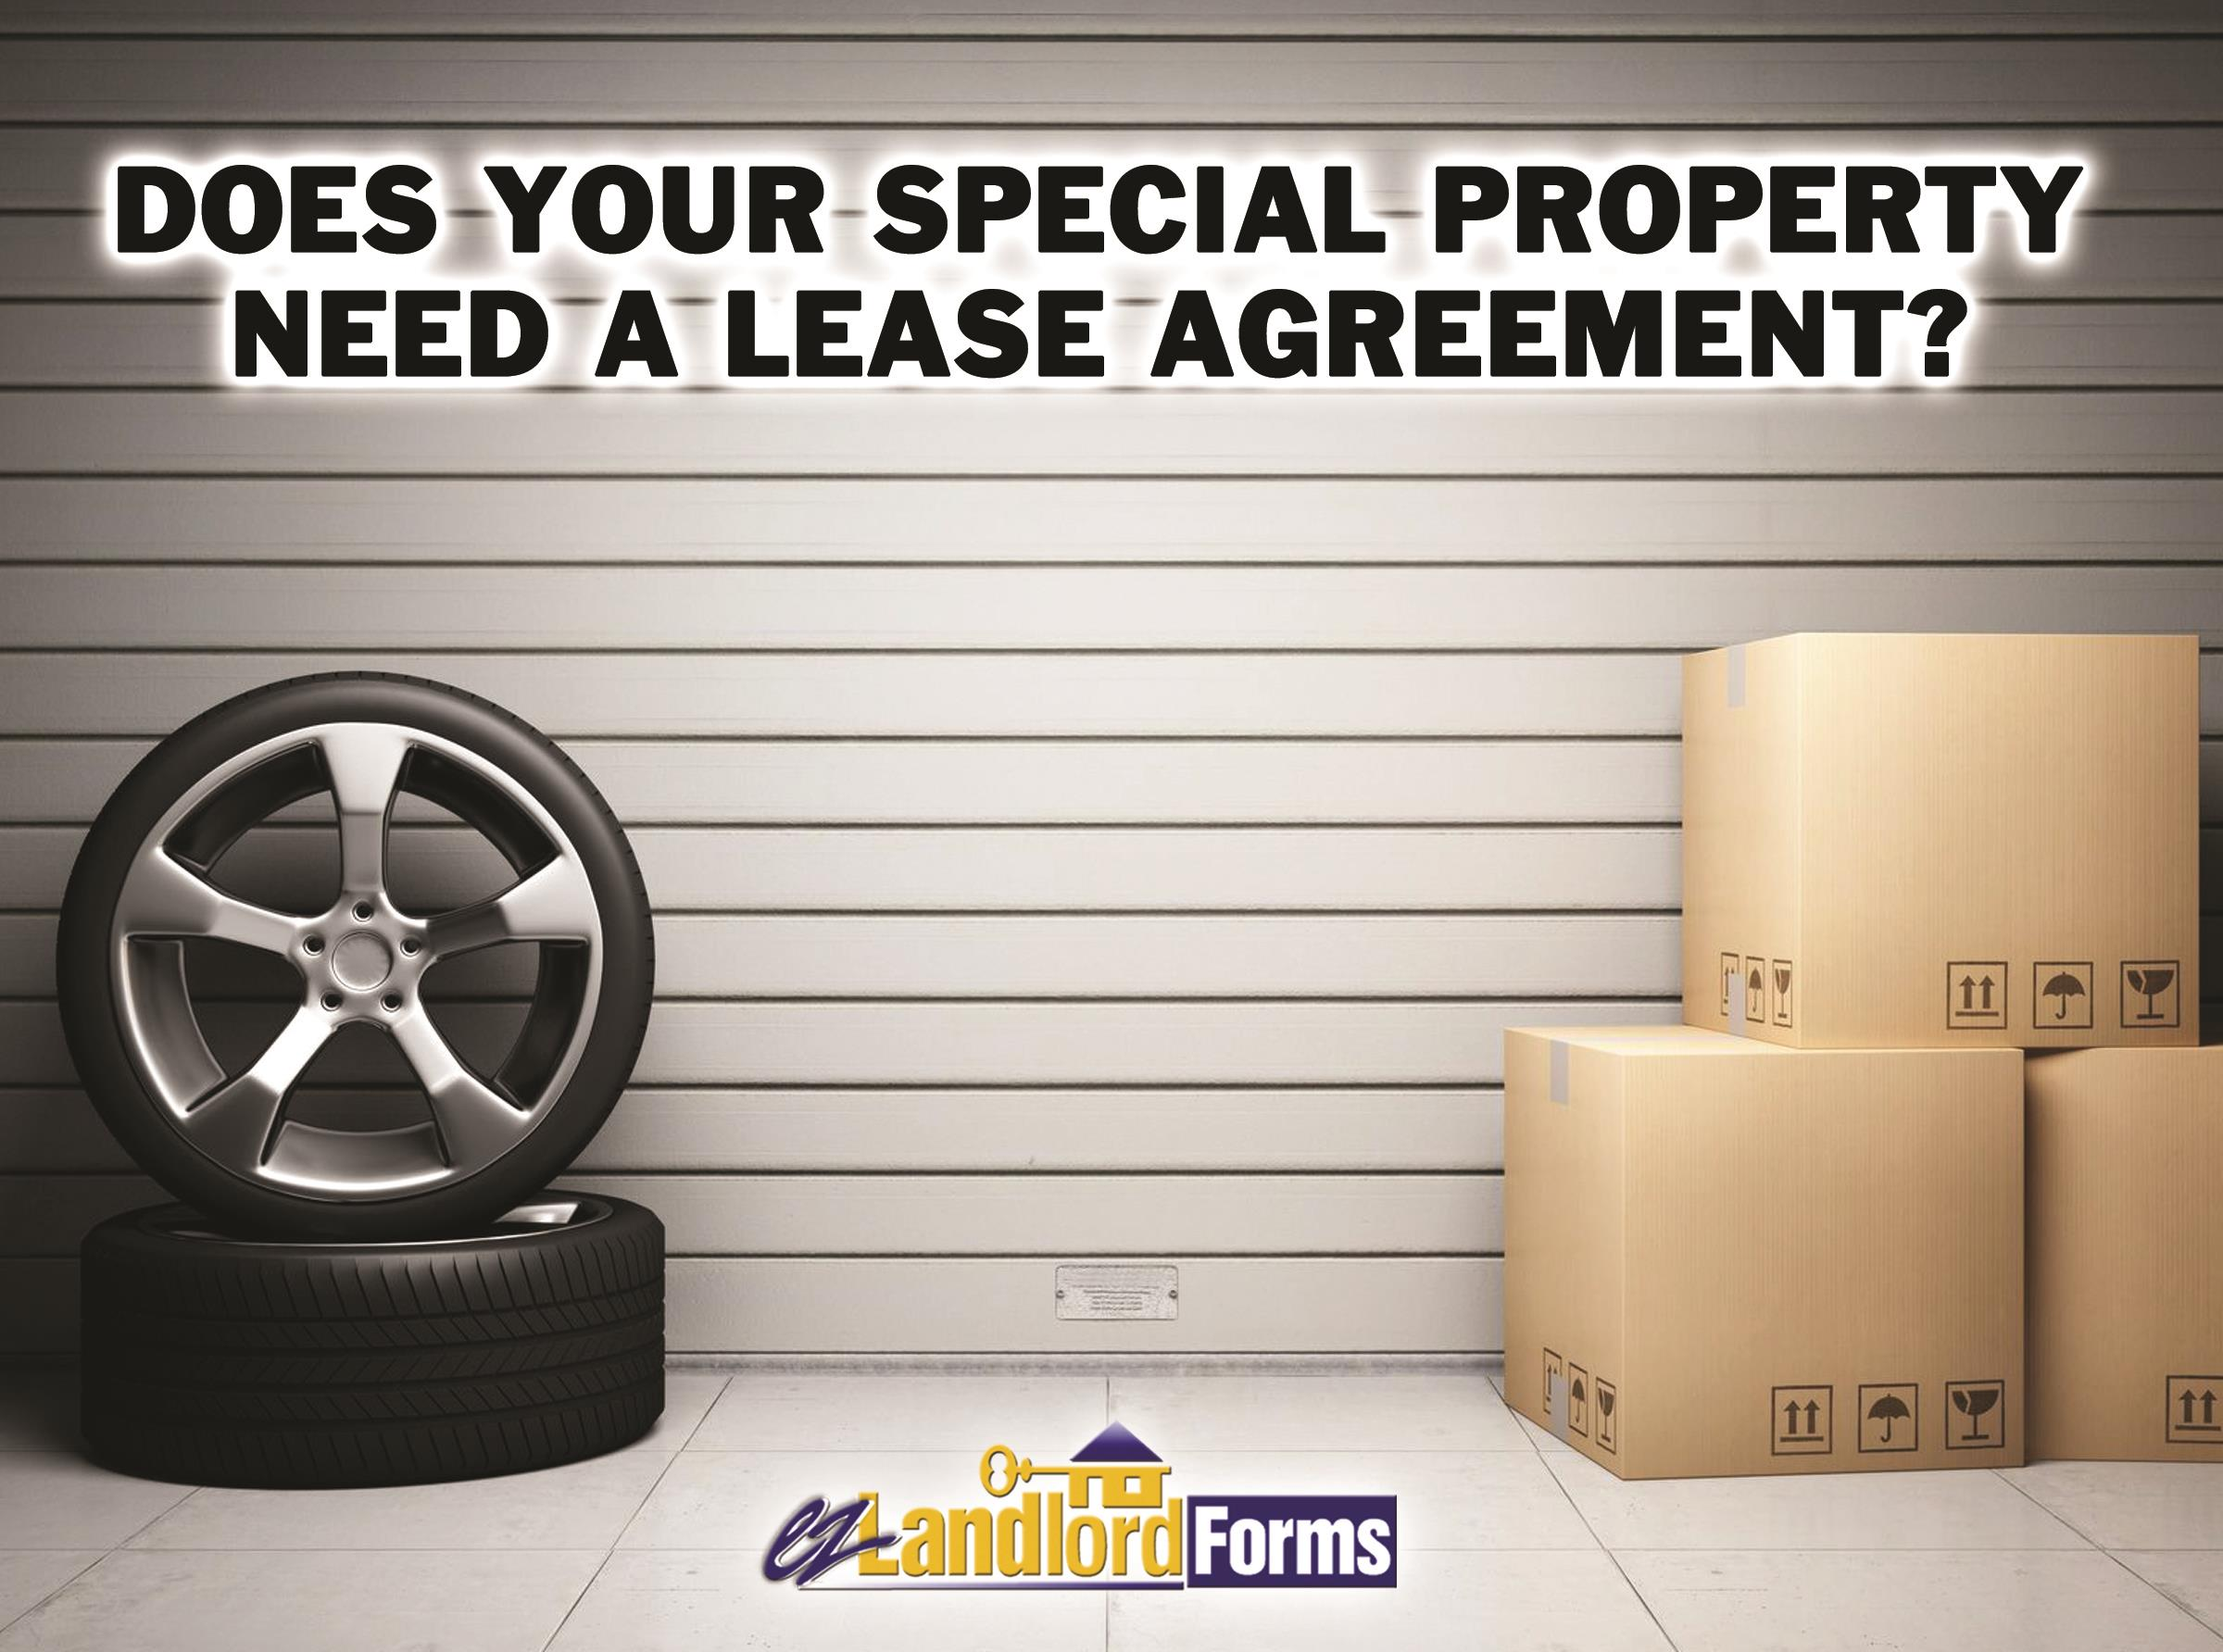 Does_Your_Special_Property_Need_a_Lease_Agreement_4-20-17_V7